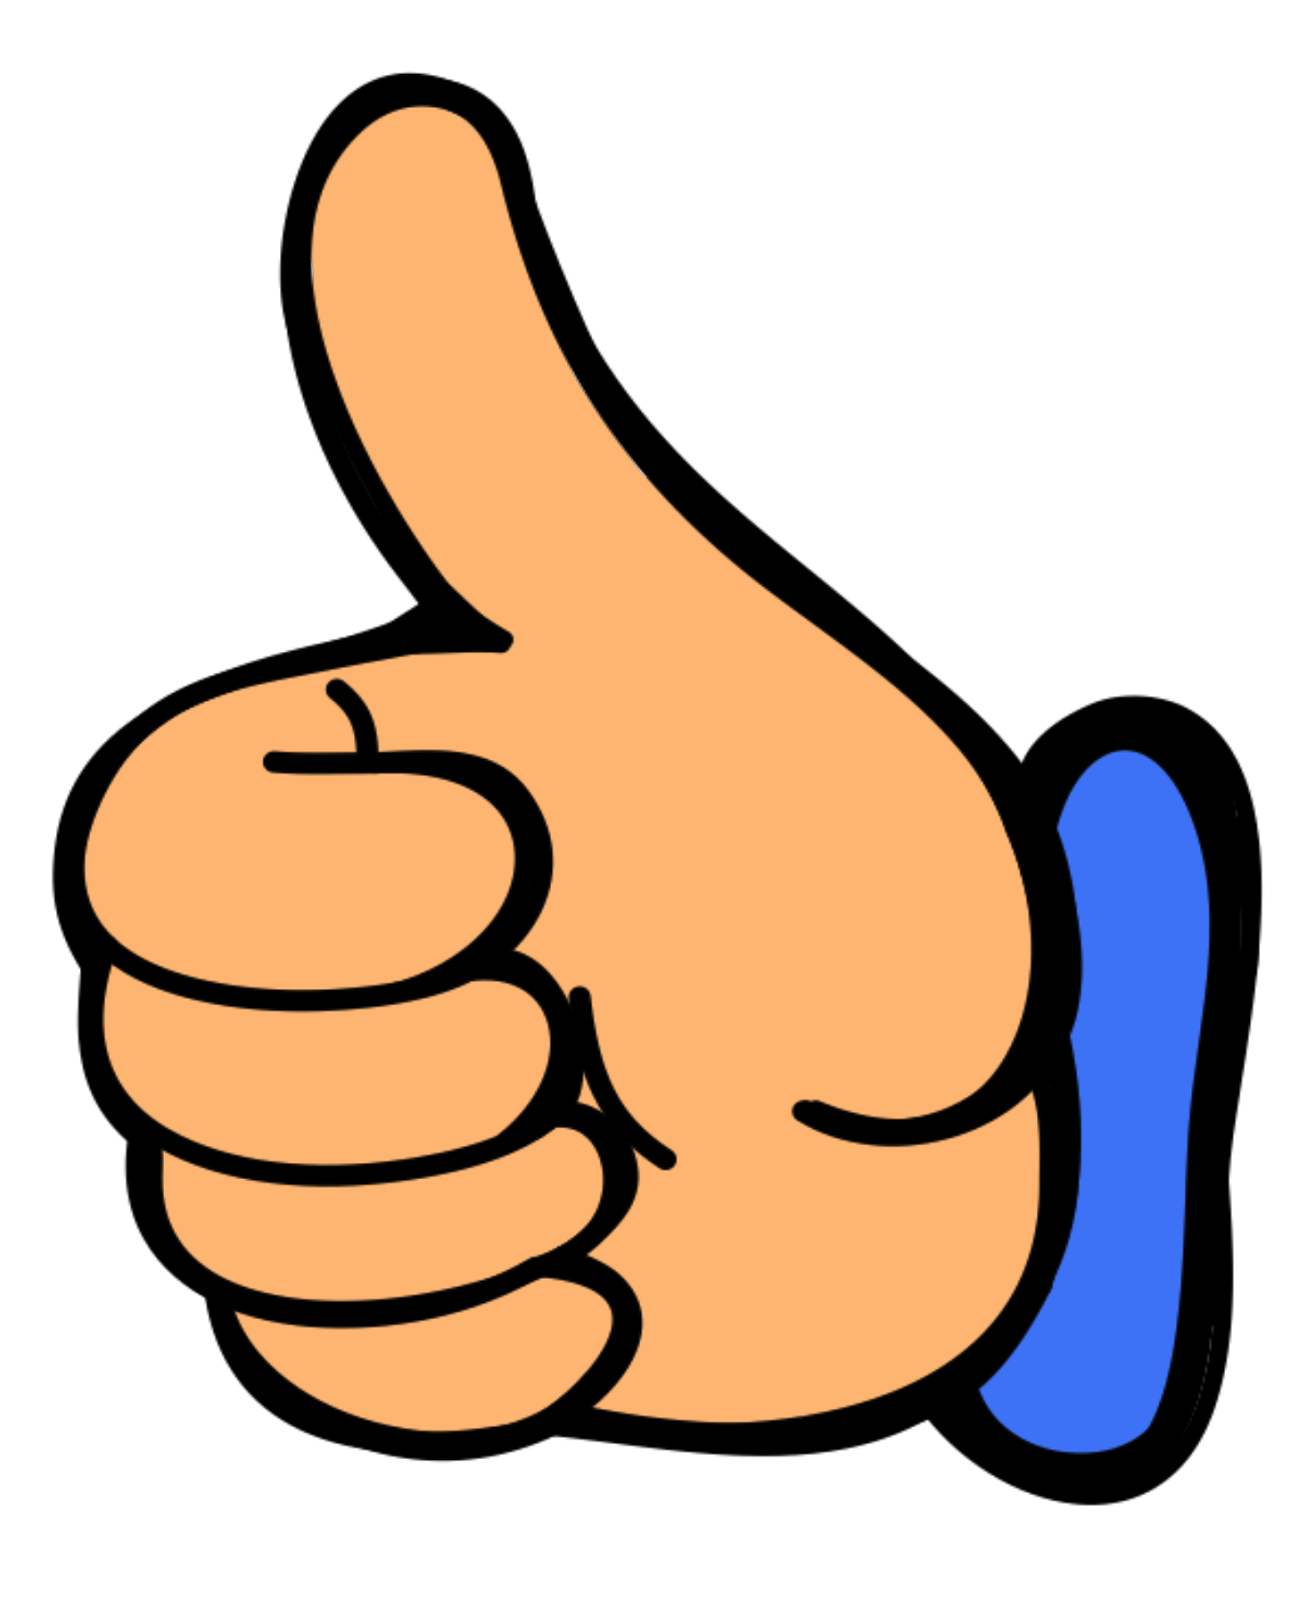 Two Thumbs Up Clipart - Clipart Kid svg stock